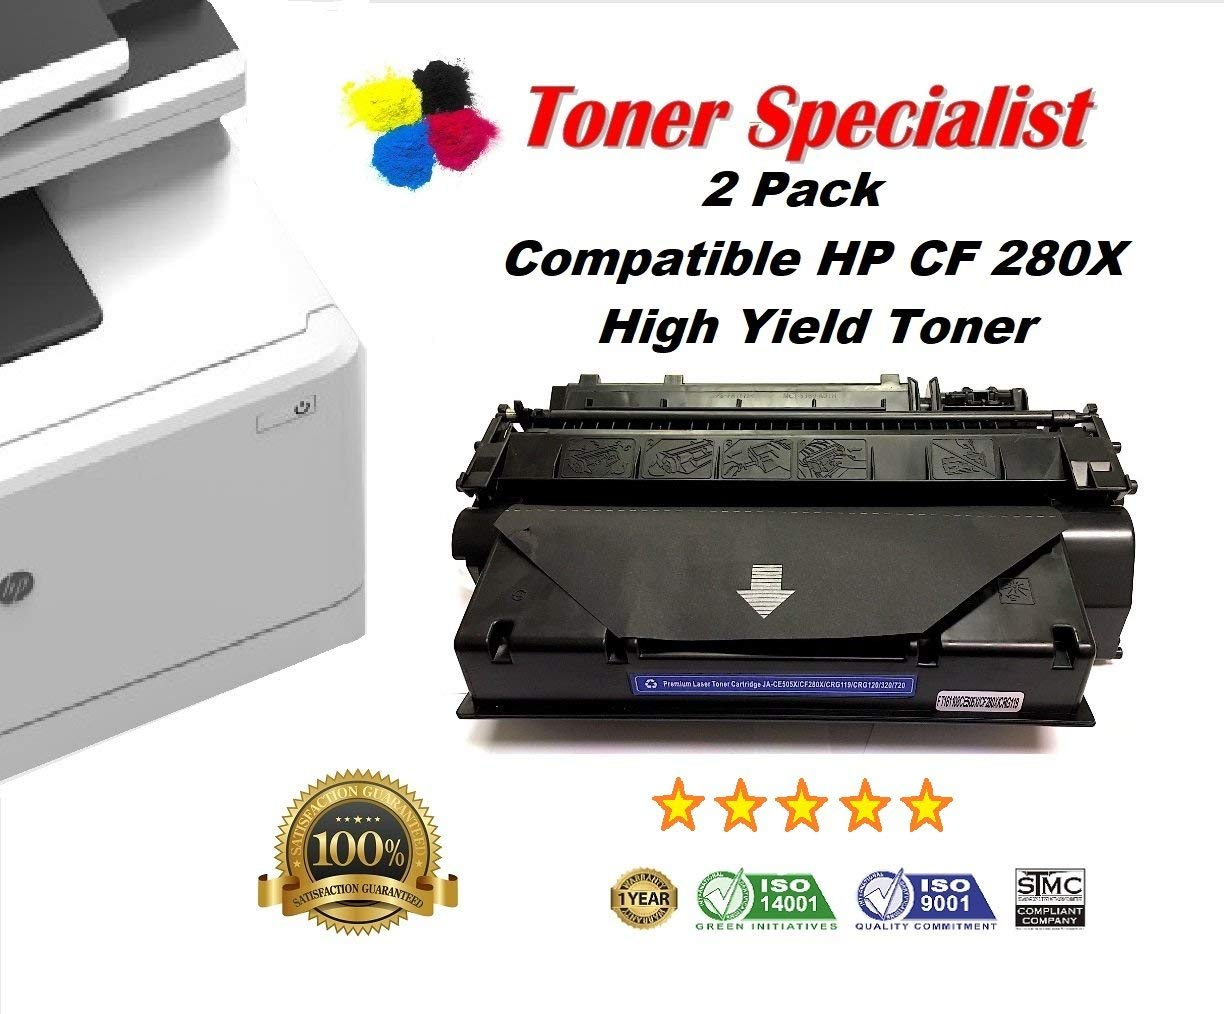 2 Pack Toner Specialist New Compatible HP 80X (CF280X) Black High Yield Toner Cartridge for use in HP LaserJet Pro 400 M401dne, HP Pro 400 M401n, HP Pro 400 M401dw, HP Pro 400 MFP M425dn printer